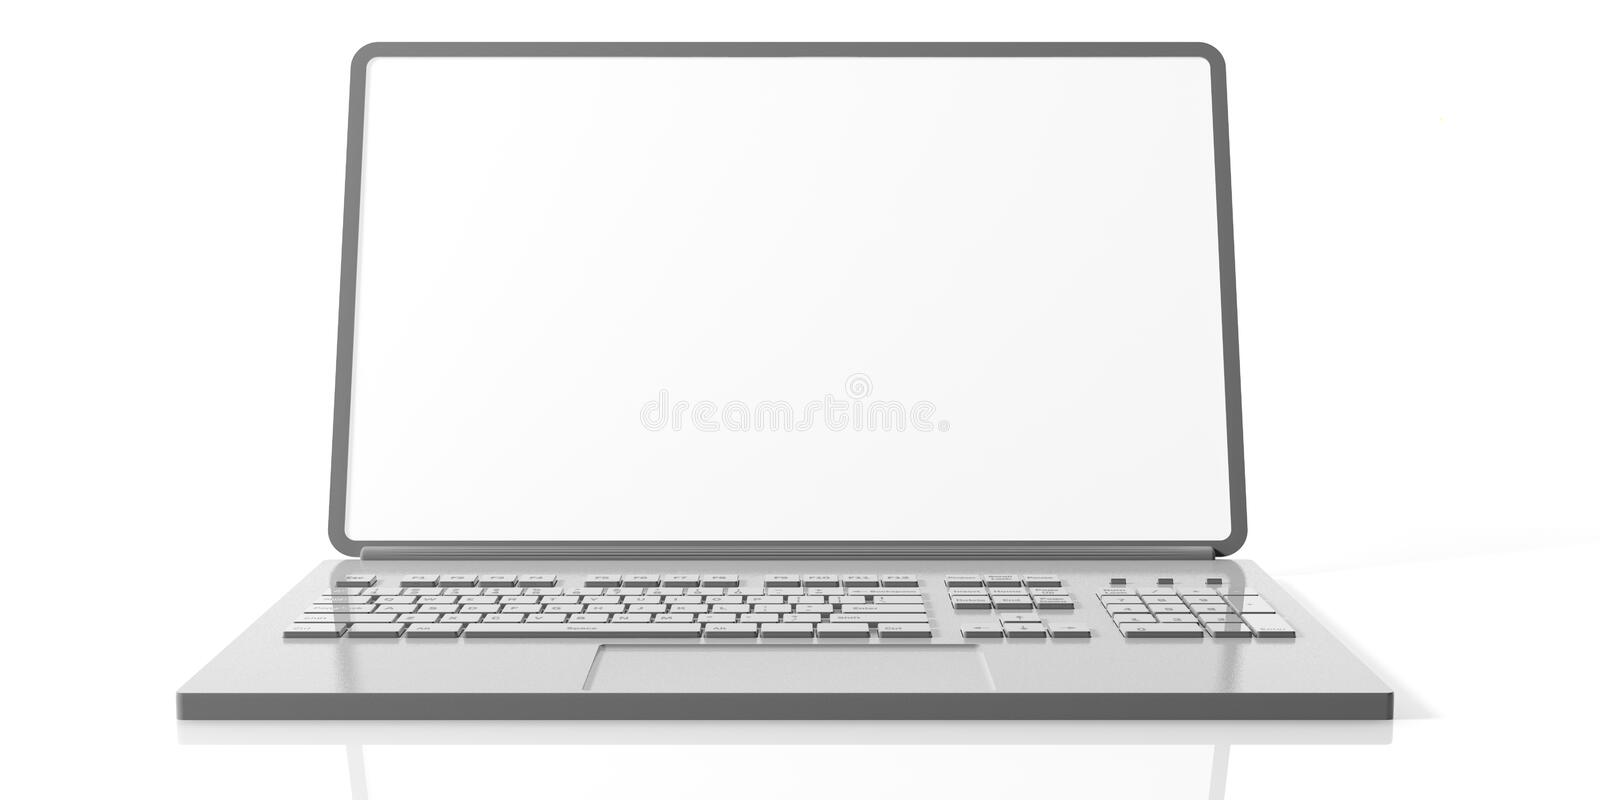 Computer laptop with blank screen isolated on white background, front view. vector illustration